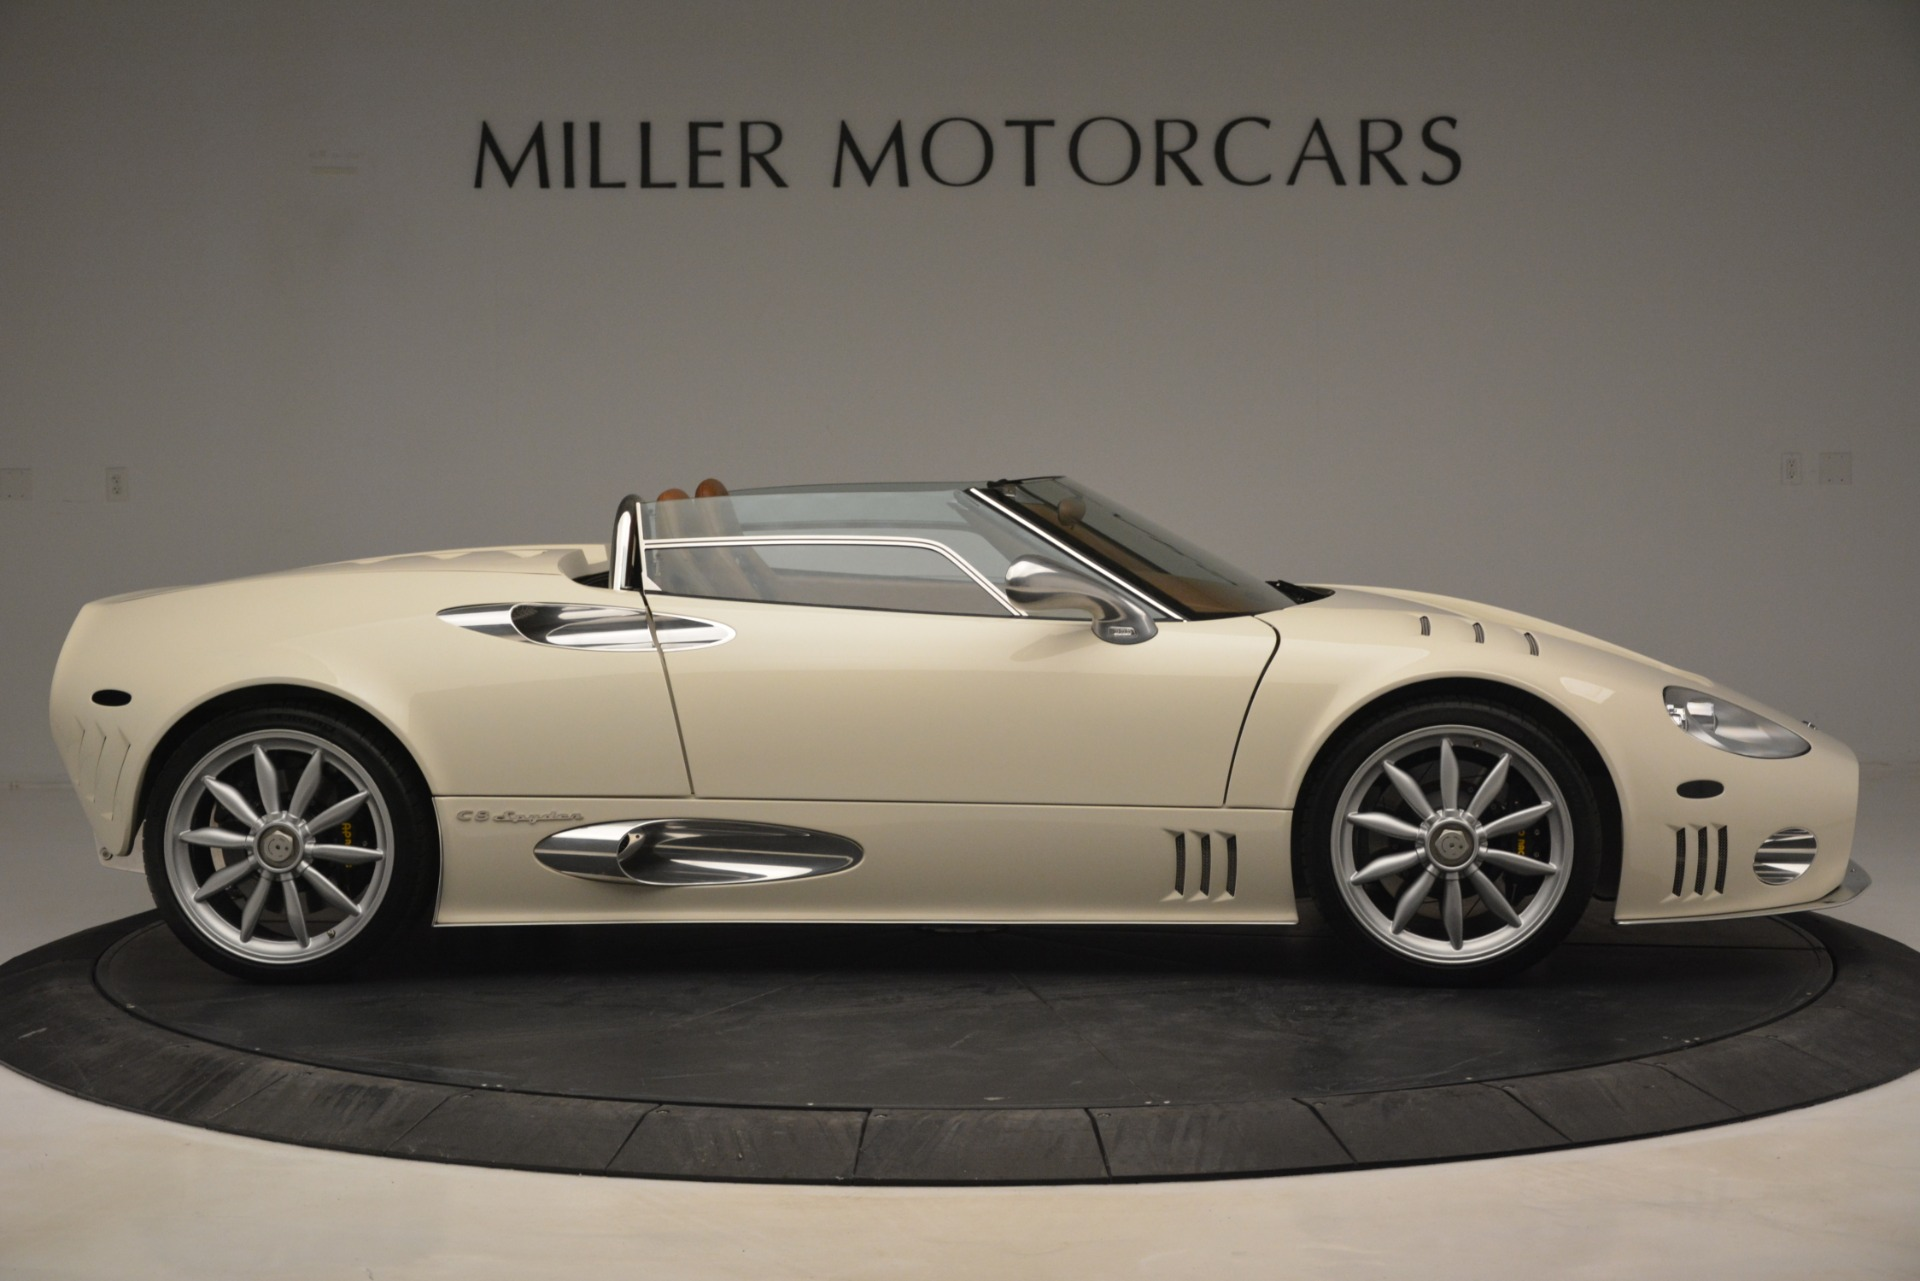 Used 2006 Spyker C8 Spyder  For Sale In Greenwich, CT. Alfa Romeo of Greenwich, 7463 1661_p9